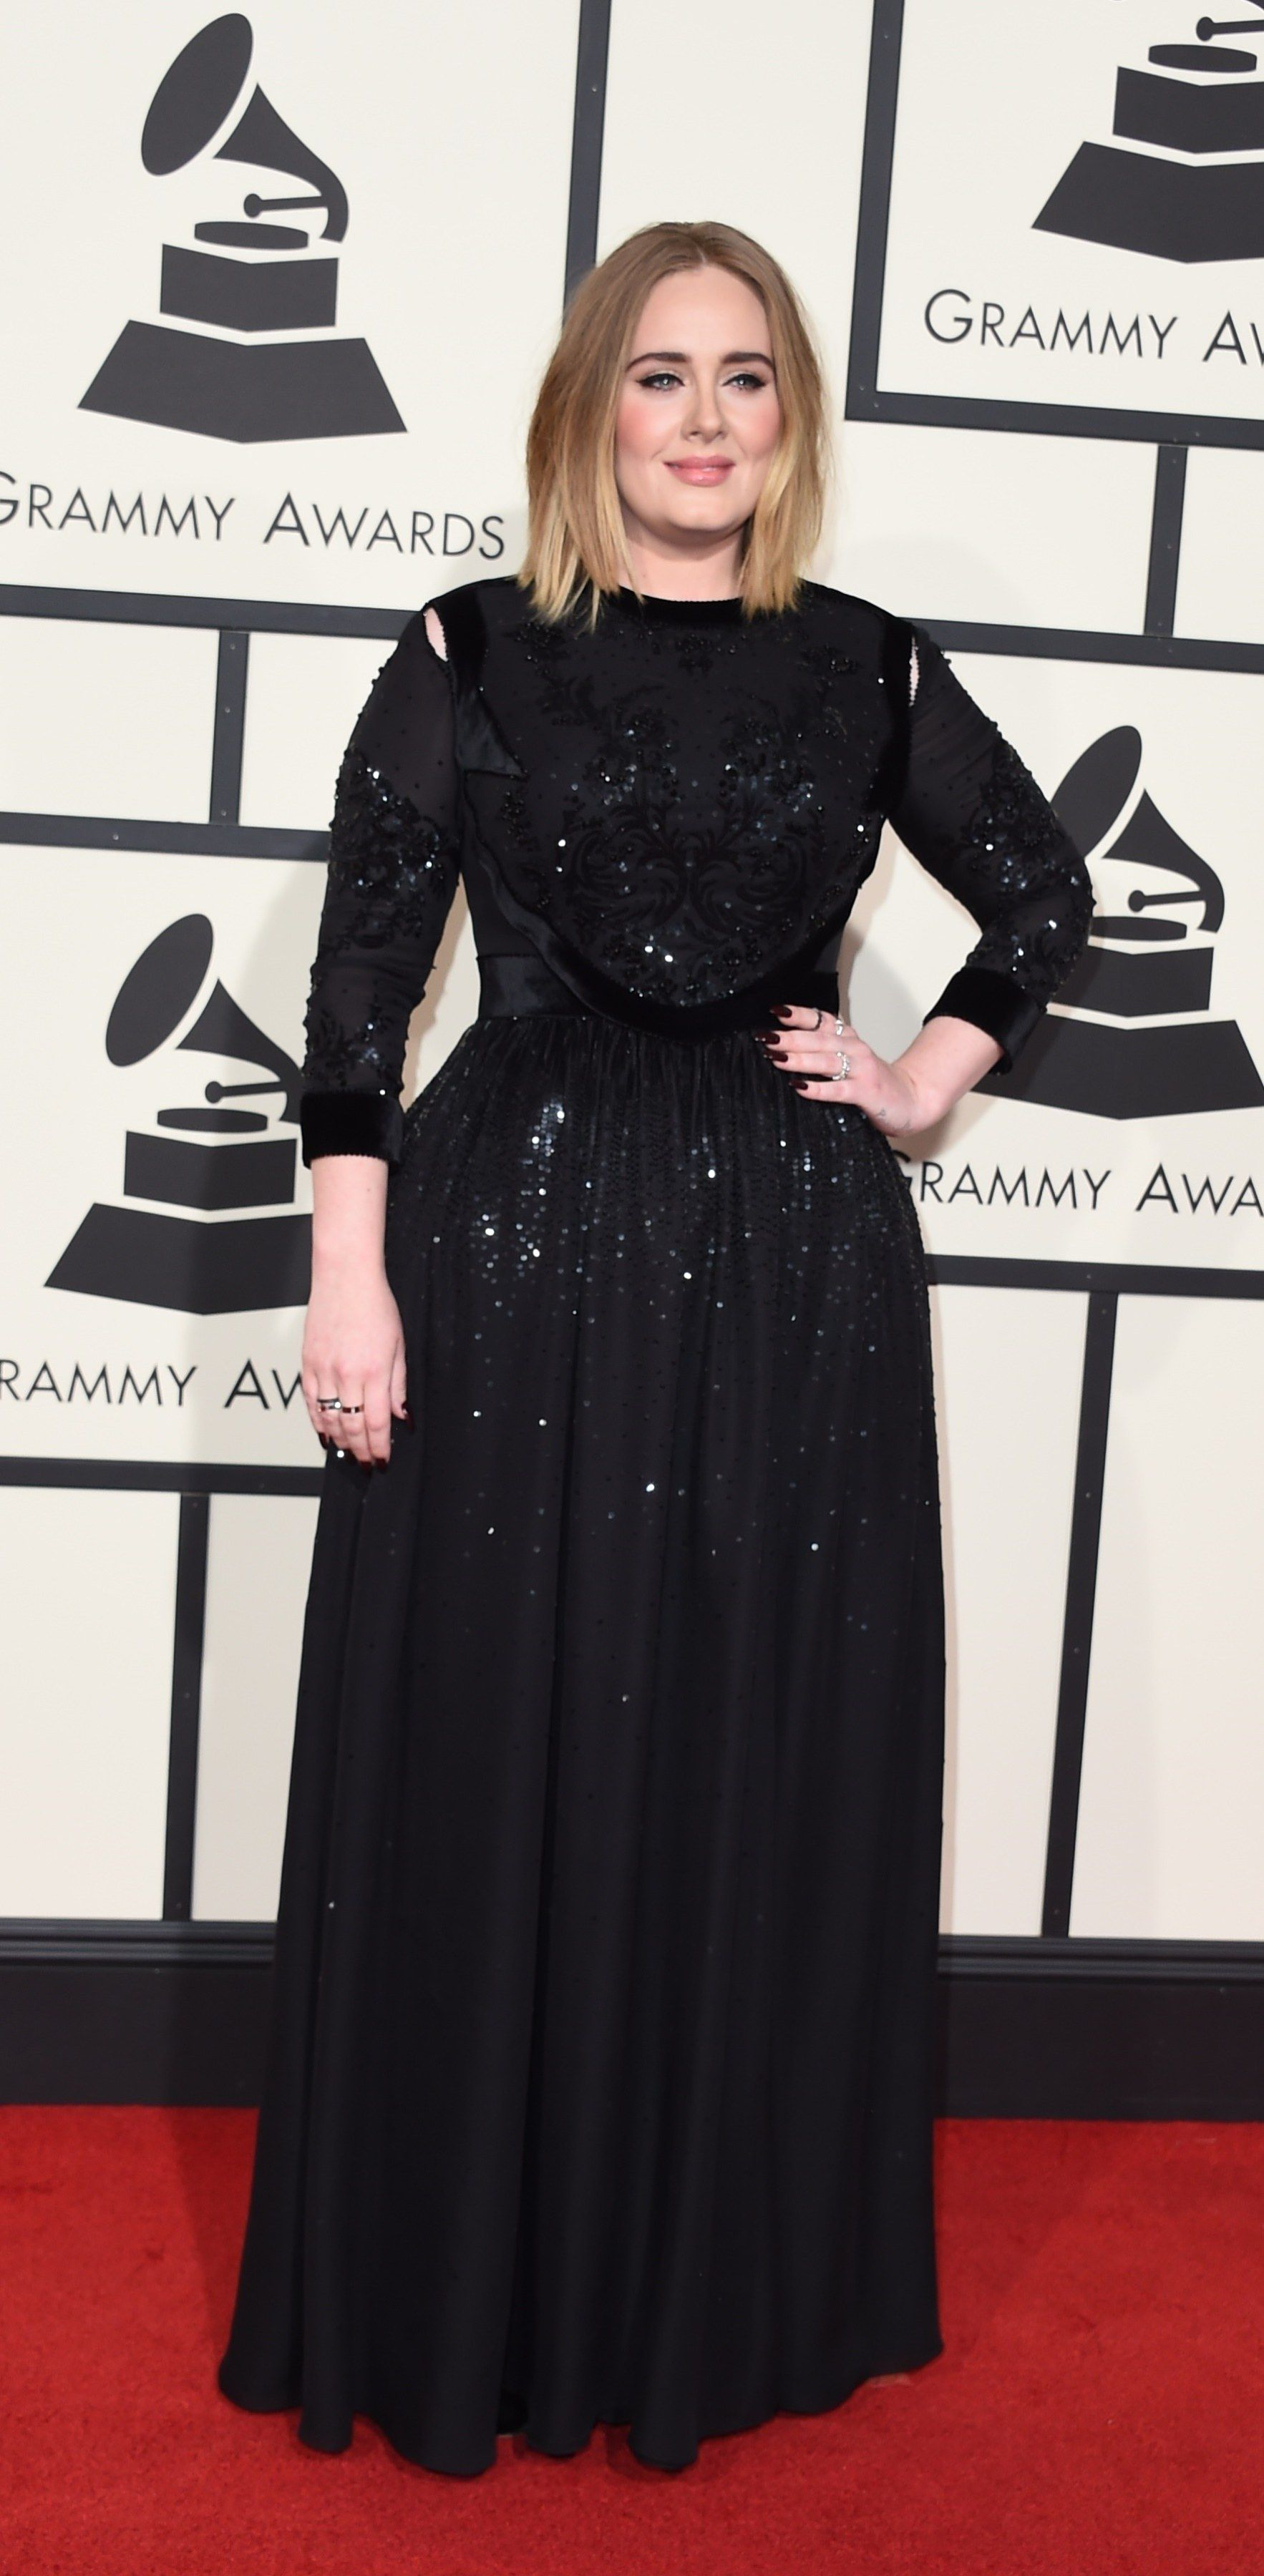 978fe1c0901 Adele Owned the Red Carpet at the Grammys